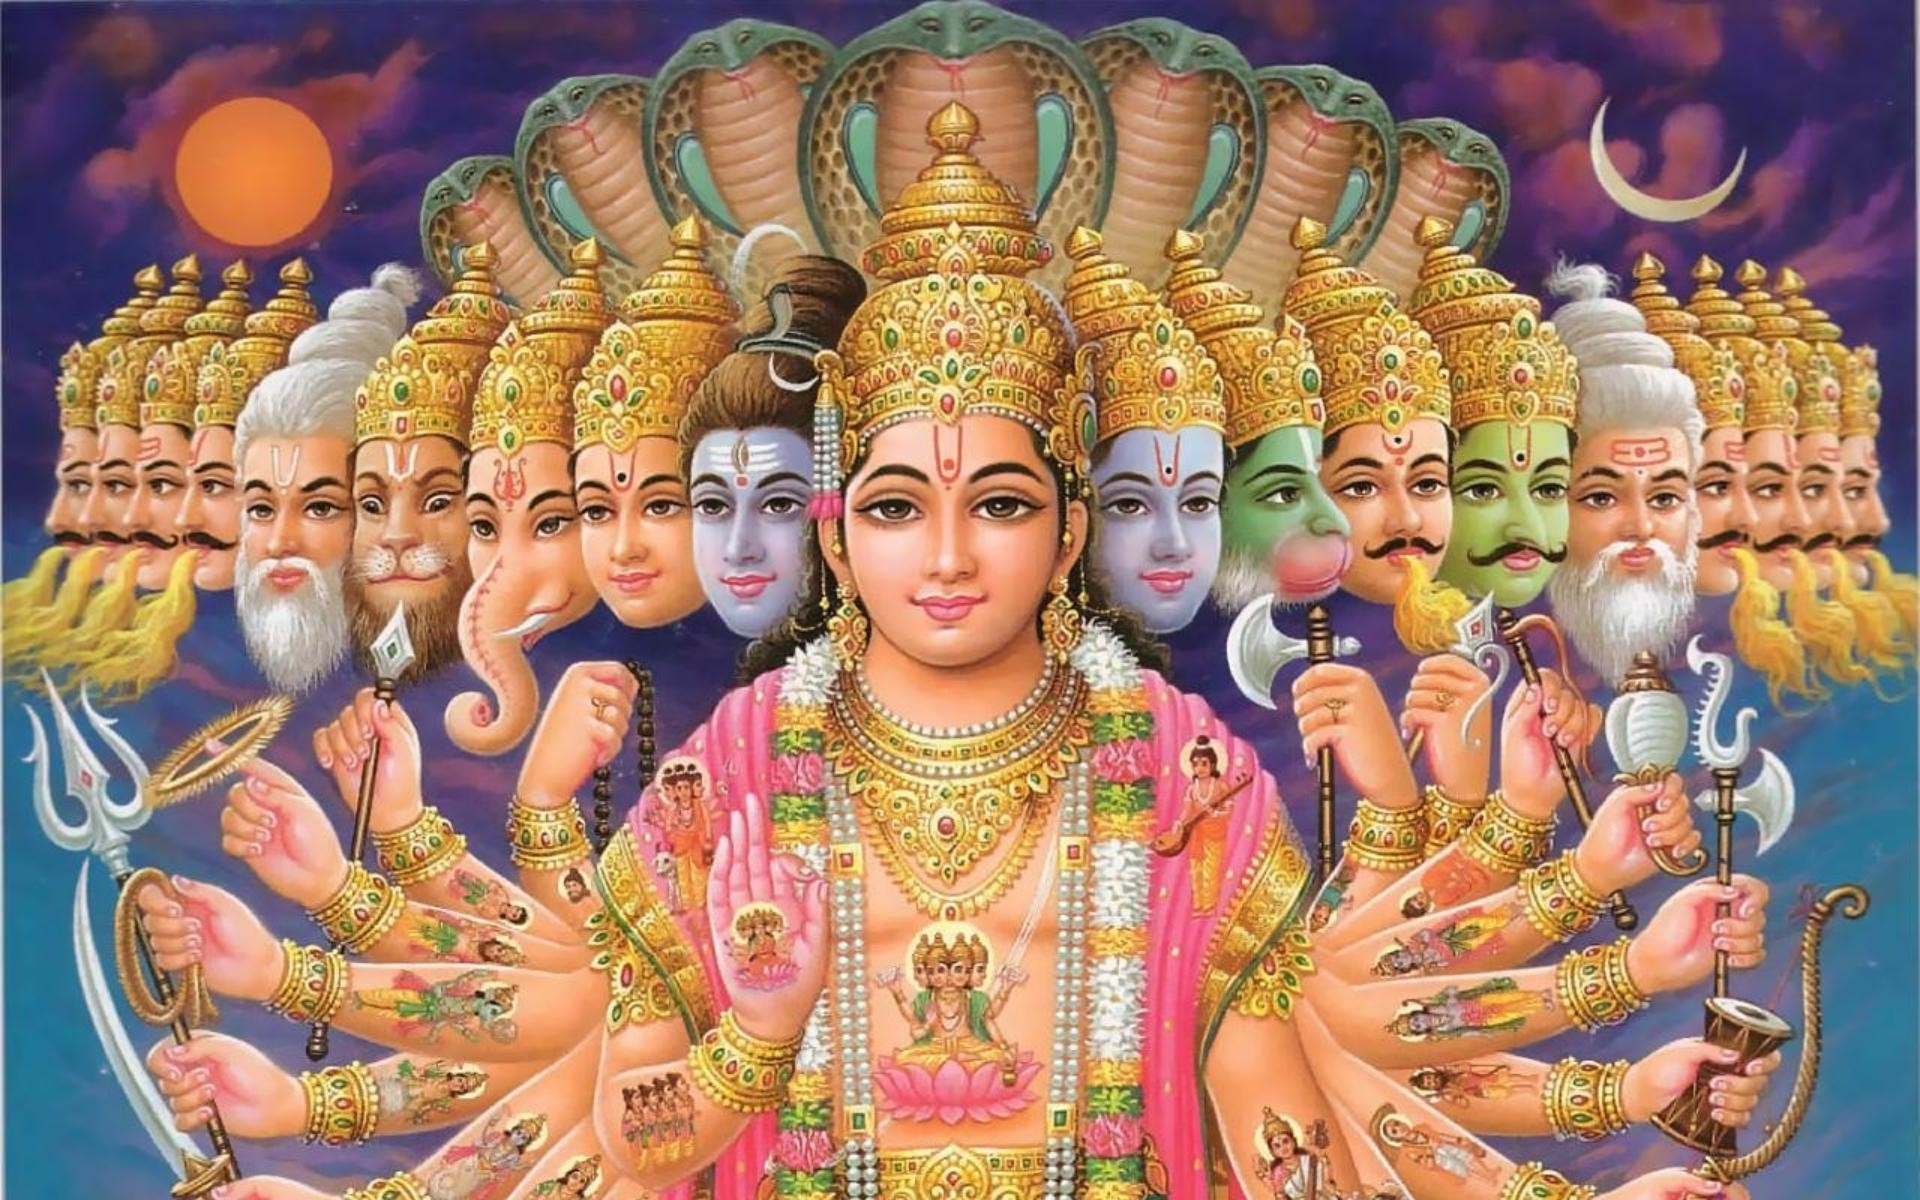 Lord Vishnu Wallpapers for Desktop in HD – Daily Backgrounds in HD